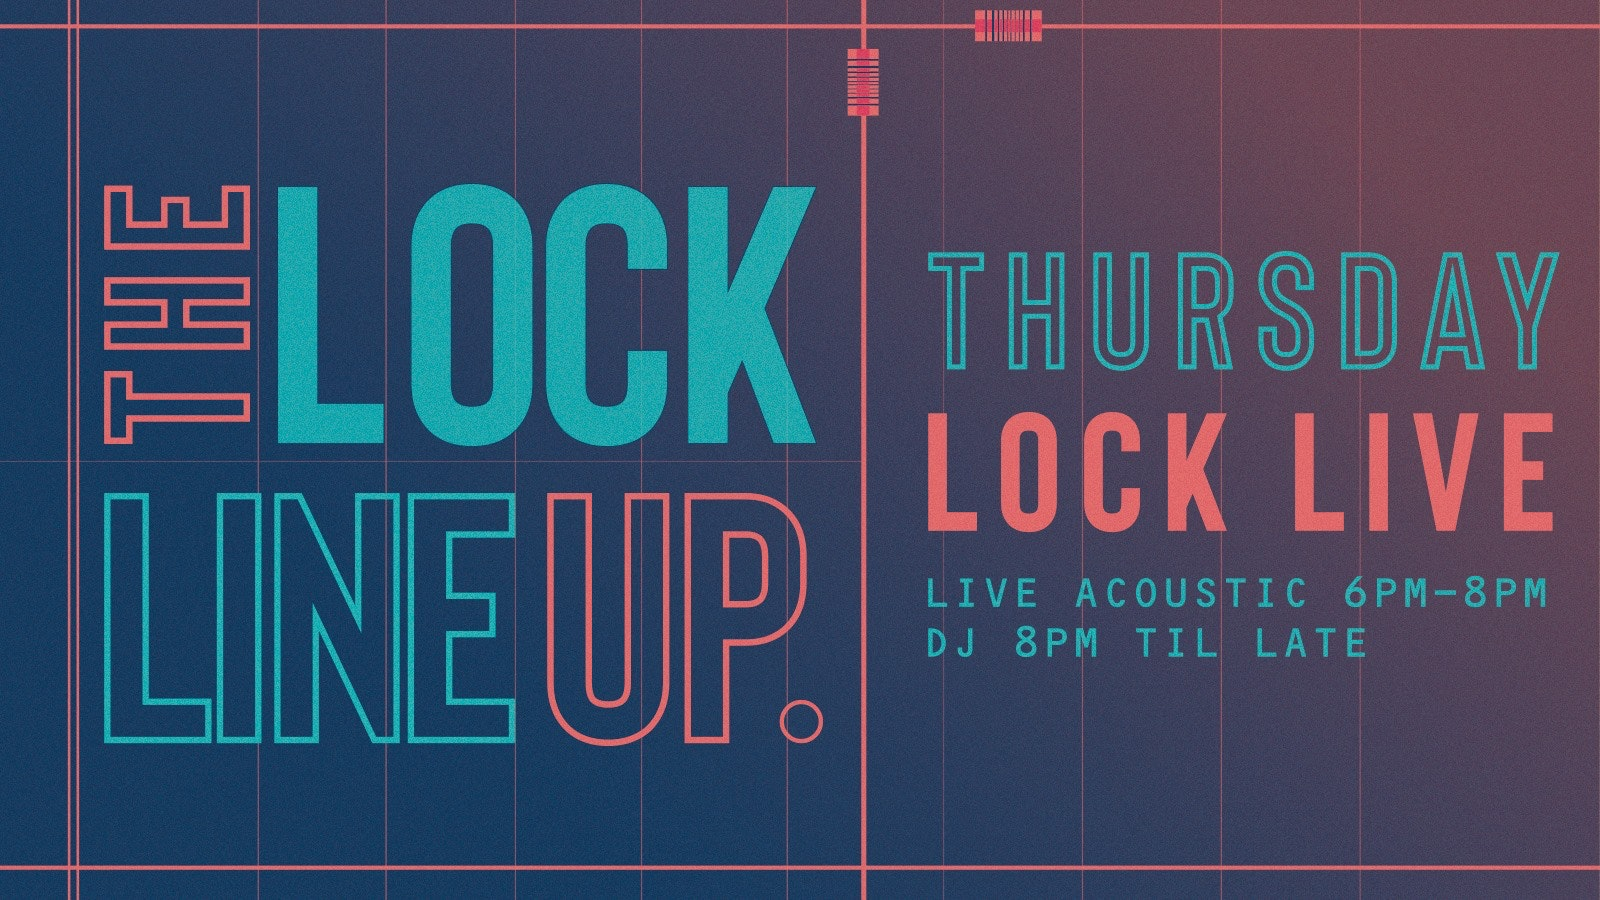 Lock Live – Every Thursday